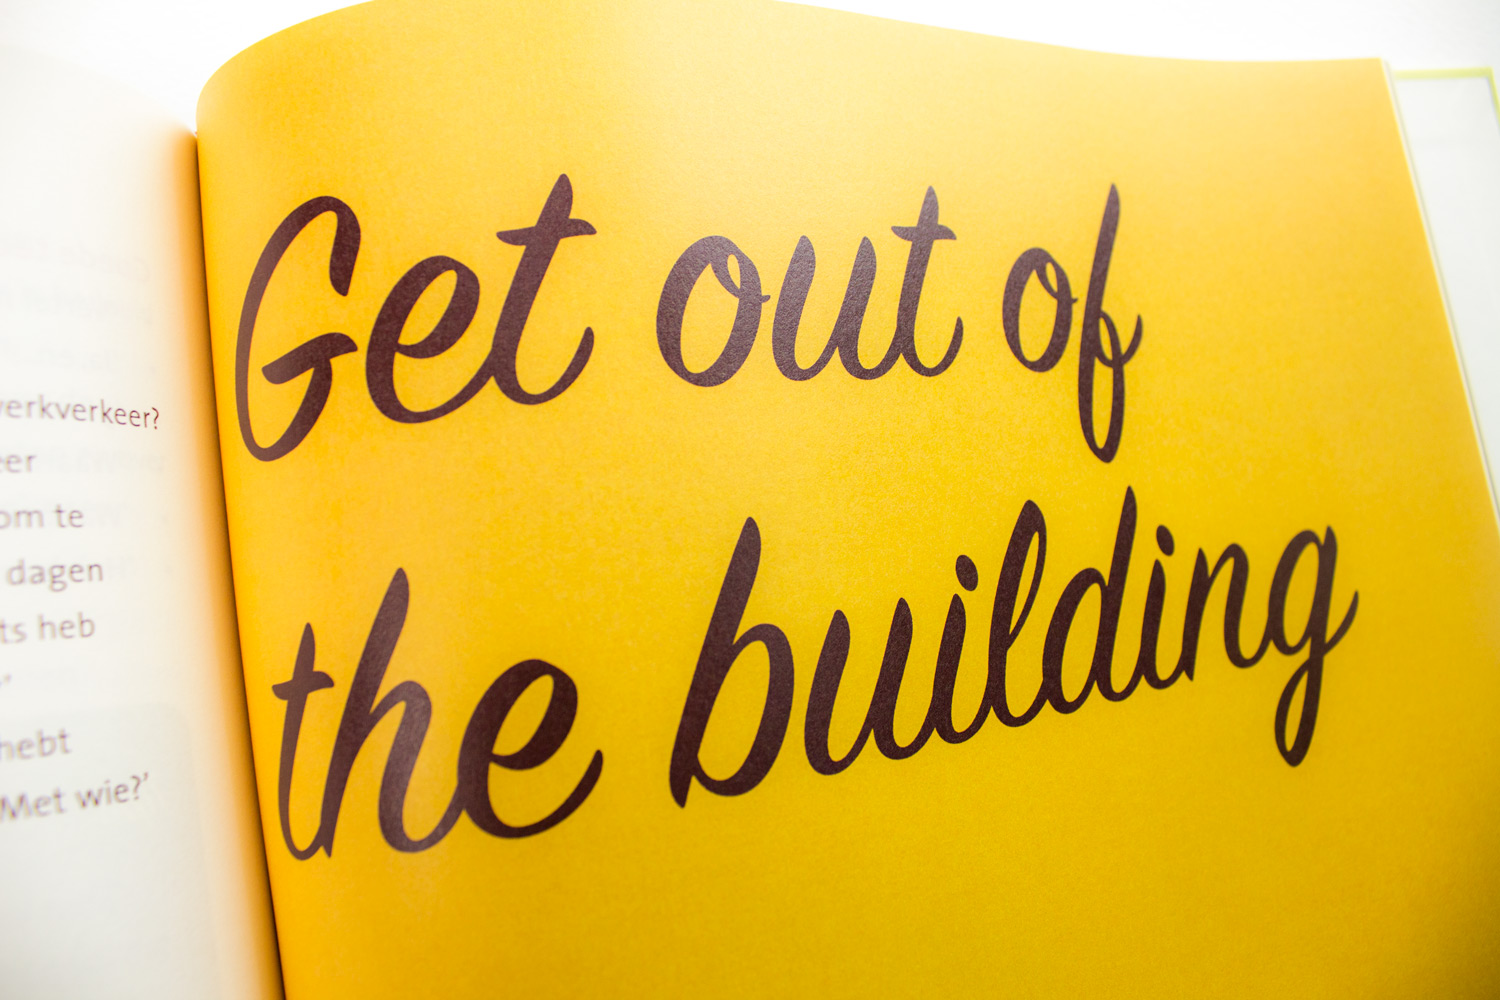 Saxion startup werkboek, pagina 'get out of the building'